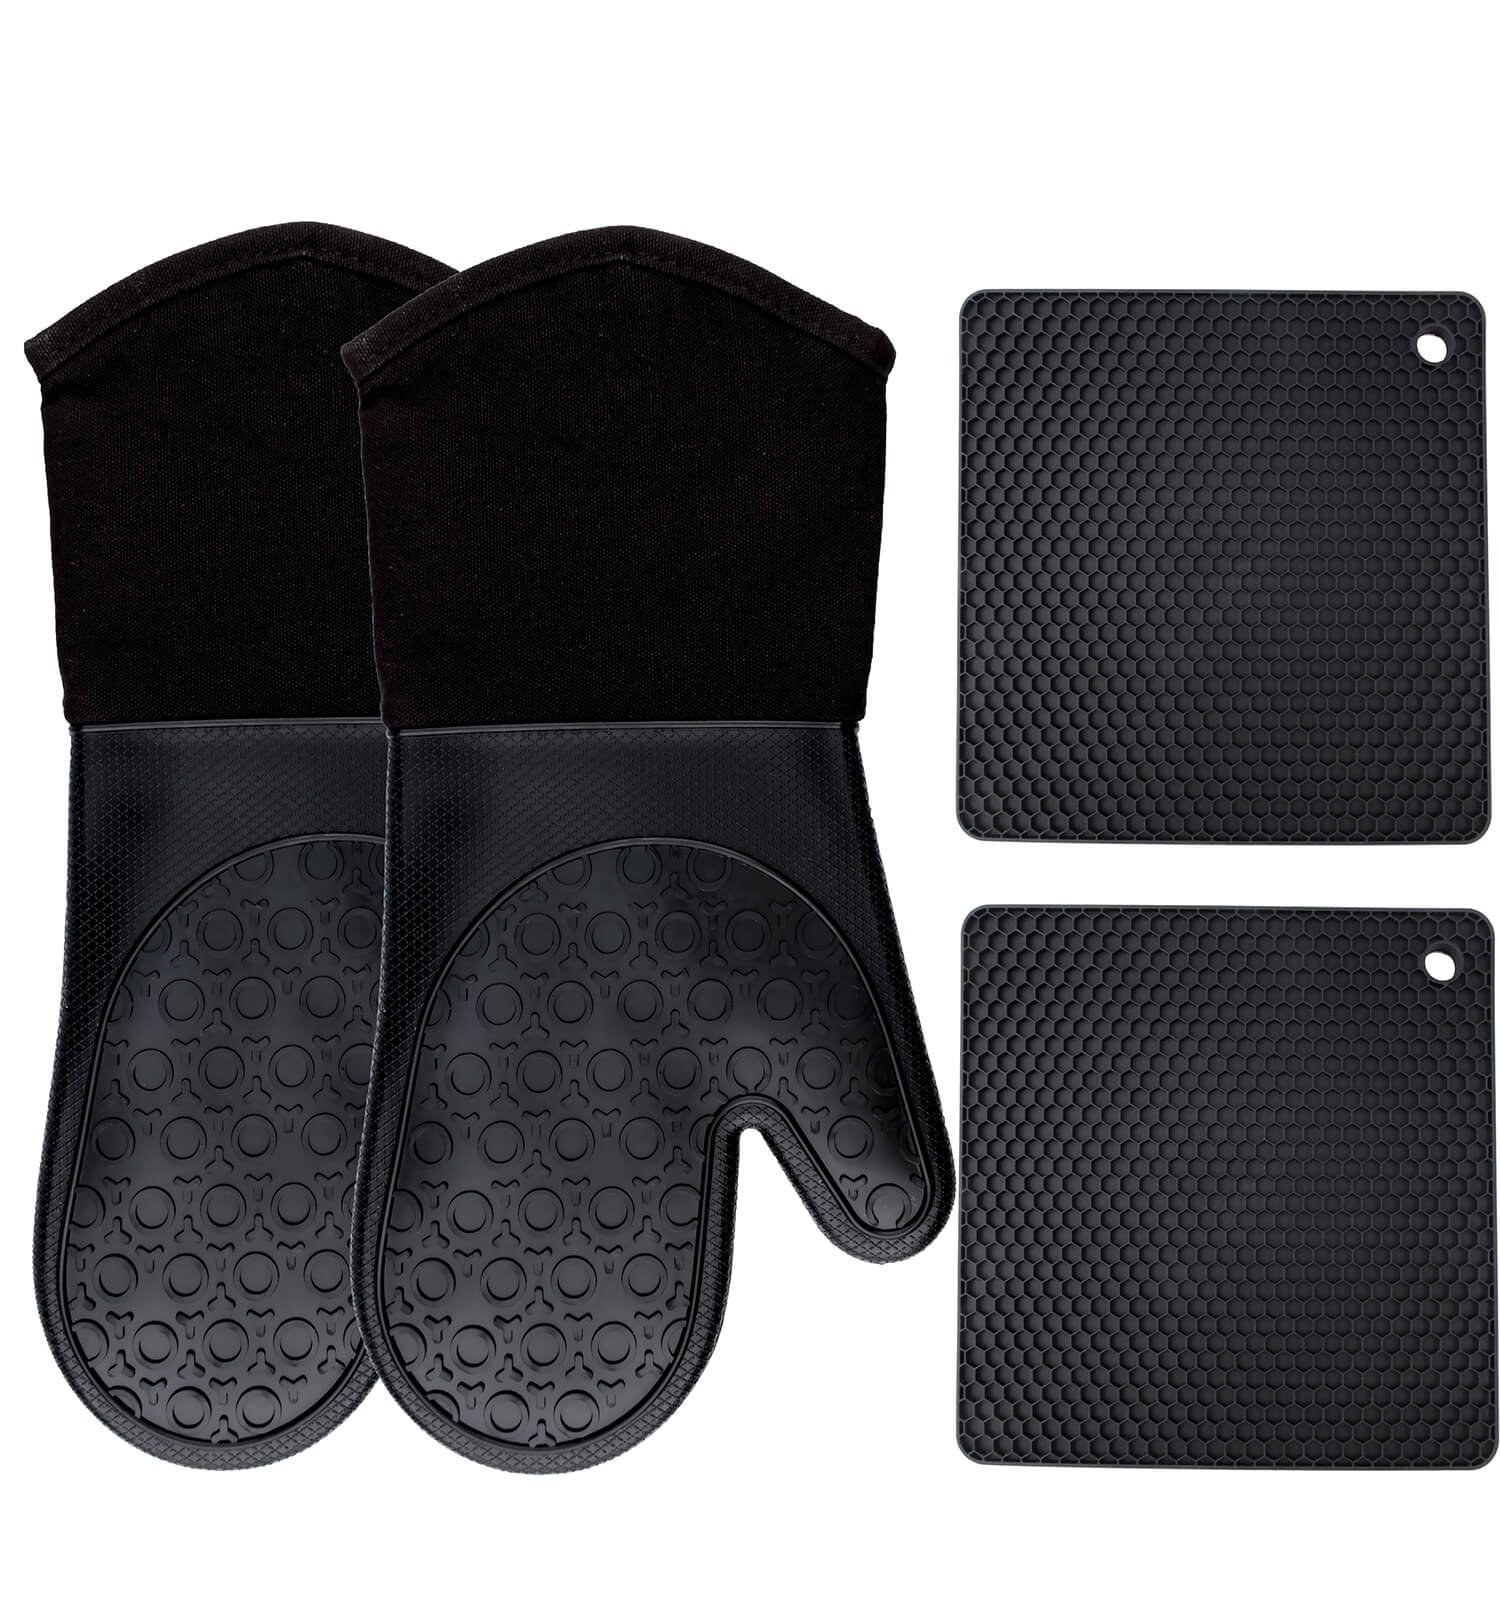 Homwe Silicone Oven Mitts and Potholders (4-Piece Sets), Kitchen Counter Safe Trivet Mats | Advanced Heat Resistant Oven Mitt, Non-Slip Textured Grip Pot Holders(Black) by HOMWE